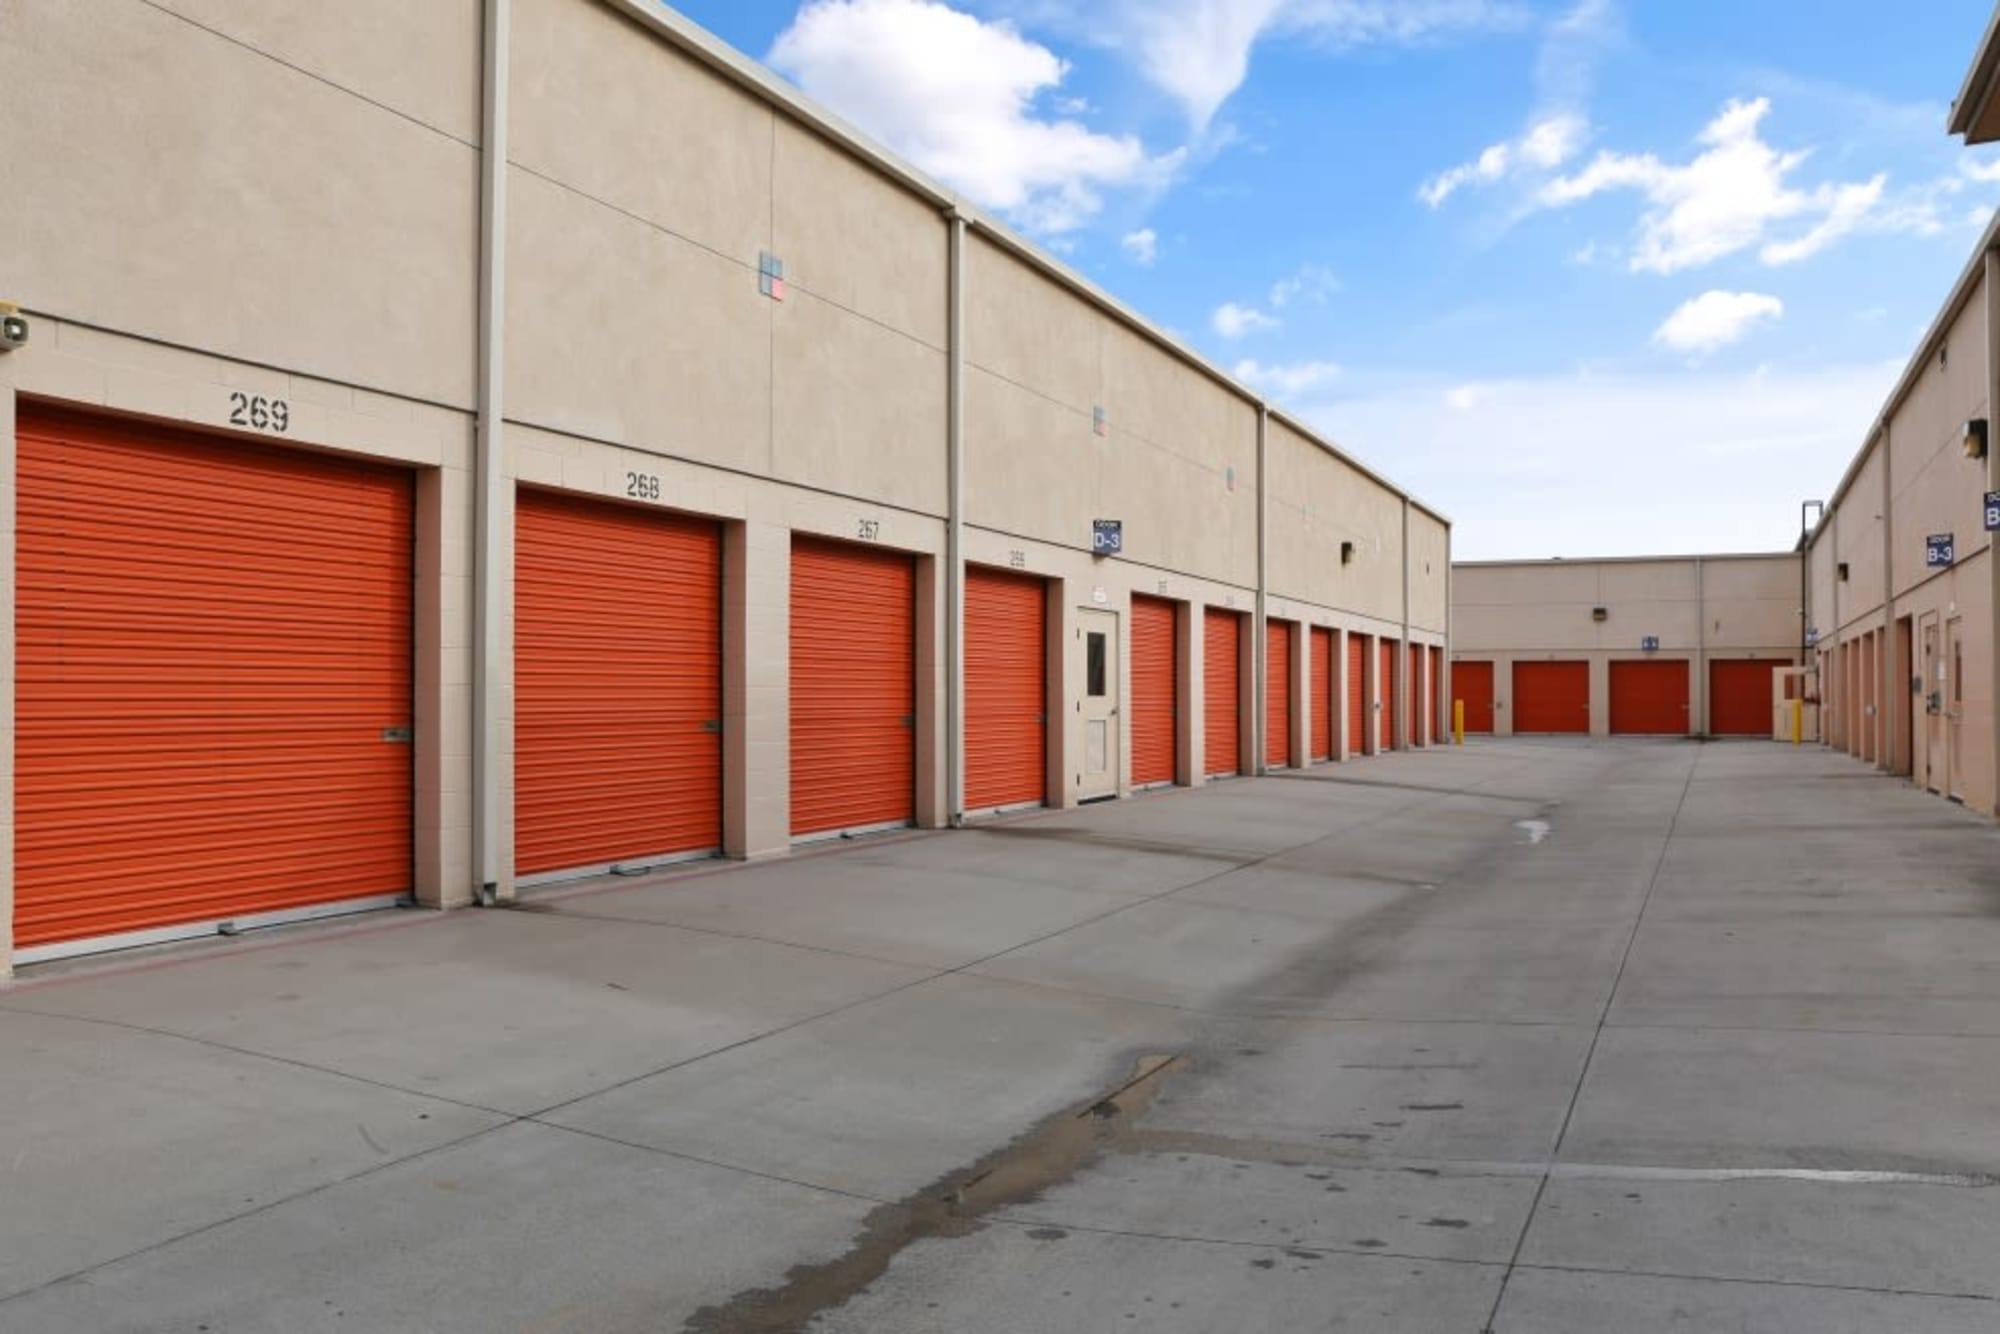 Outdoor storage units in Cypress, California